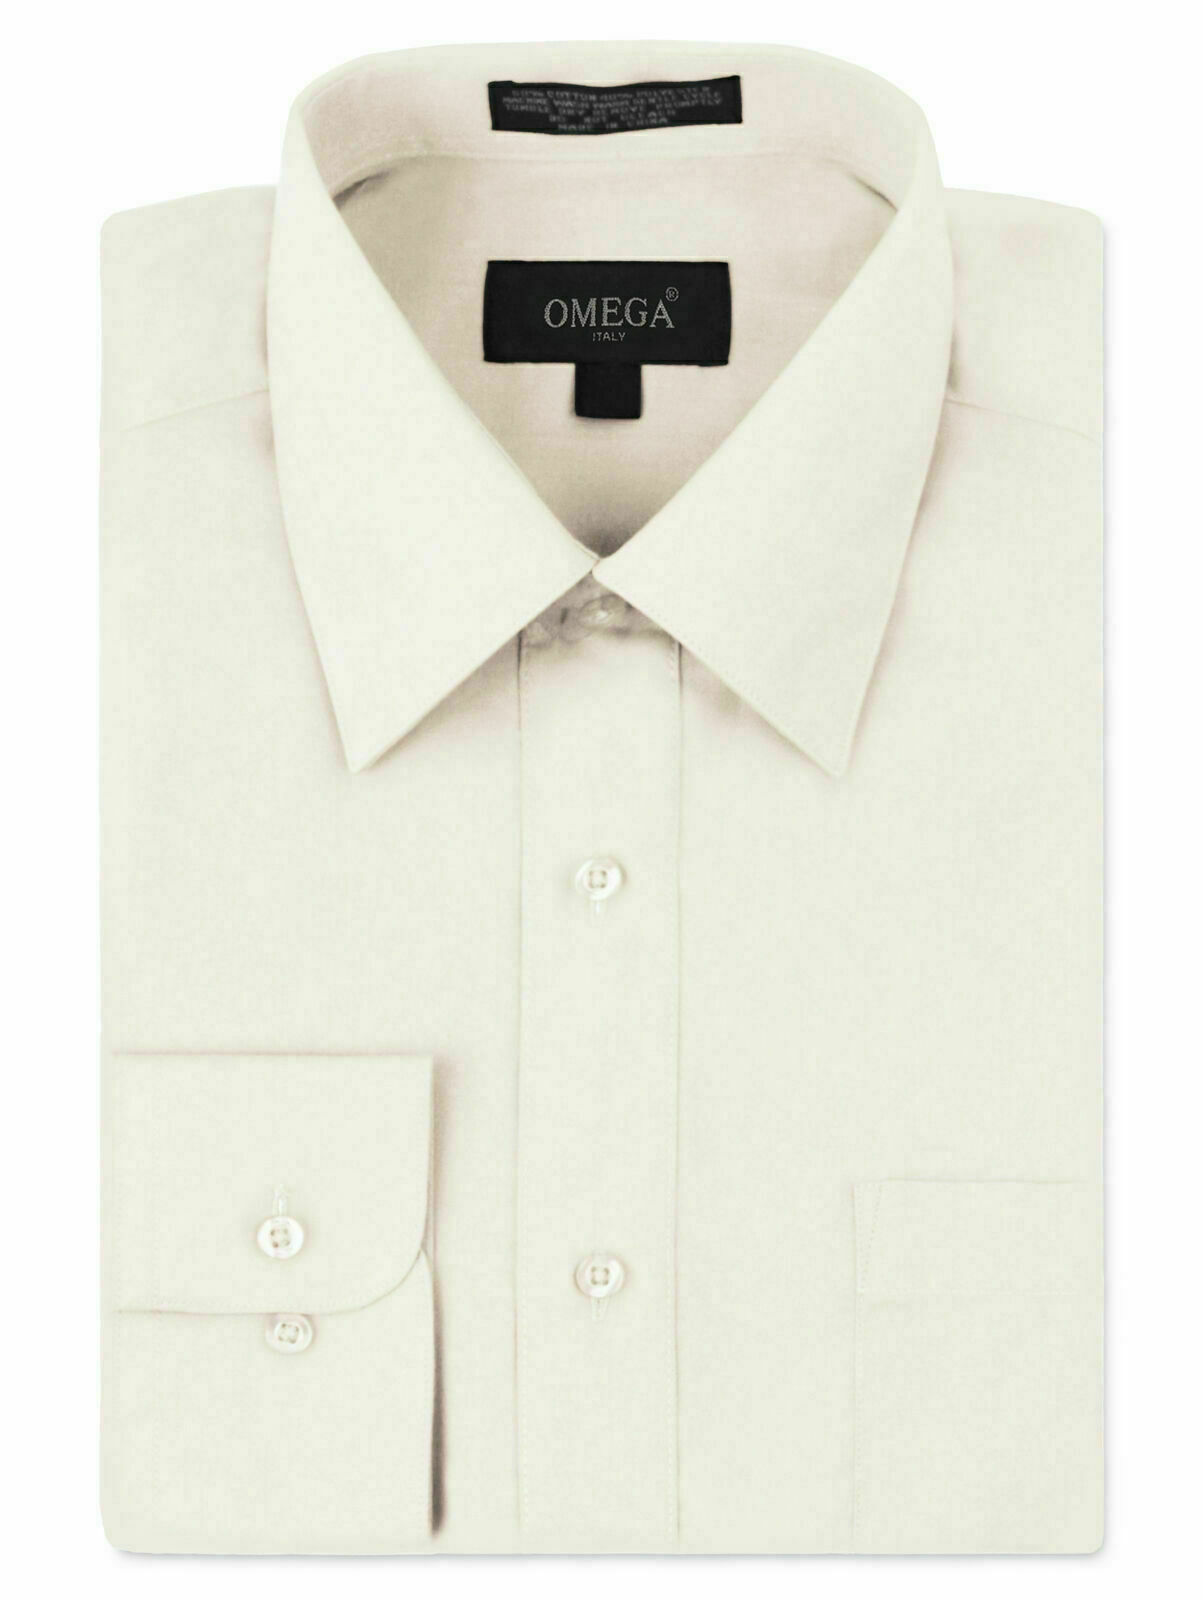 Omega Italy Men's Long Sleeve Solid Barrel Cuff Ivory Dress Shirt w/ Defect 2XL